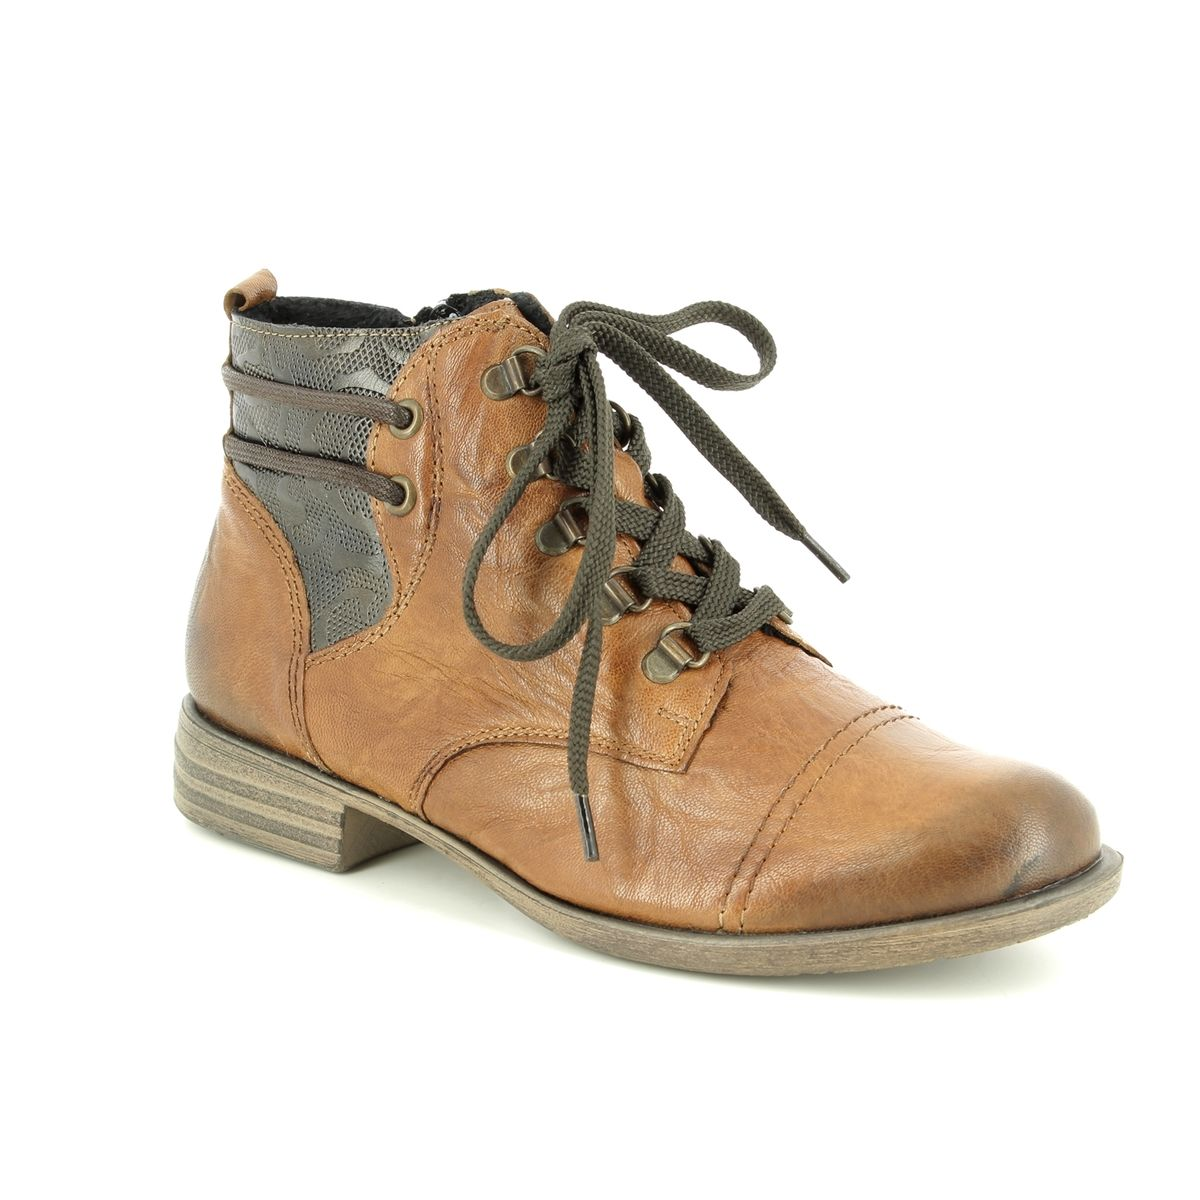 D4977-22 Tan Leather fashion ankle boots